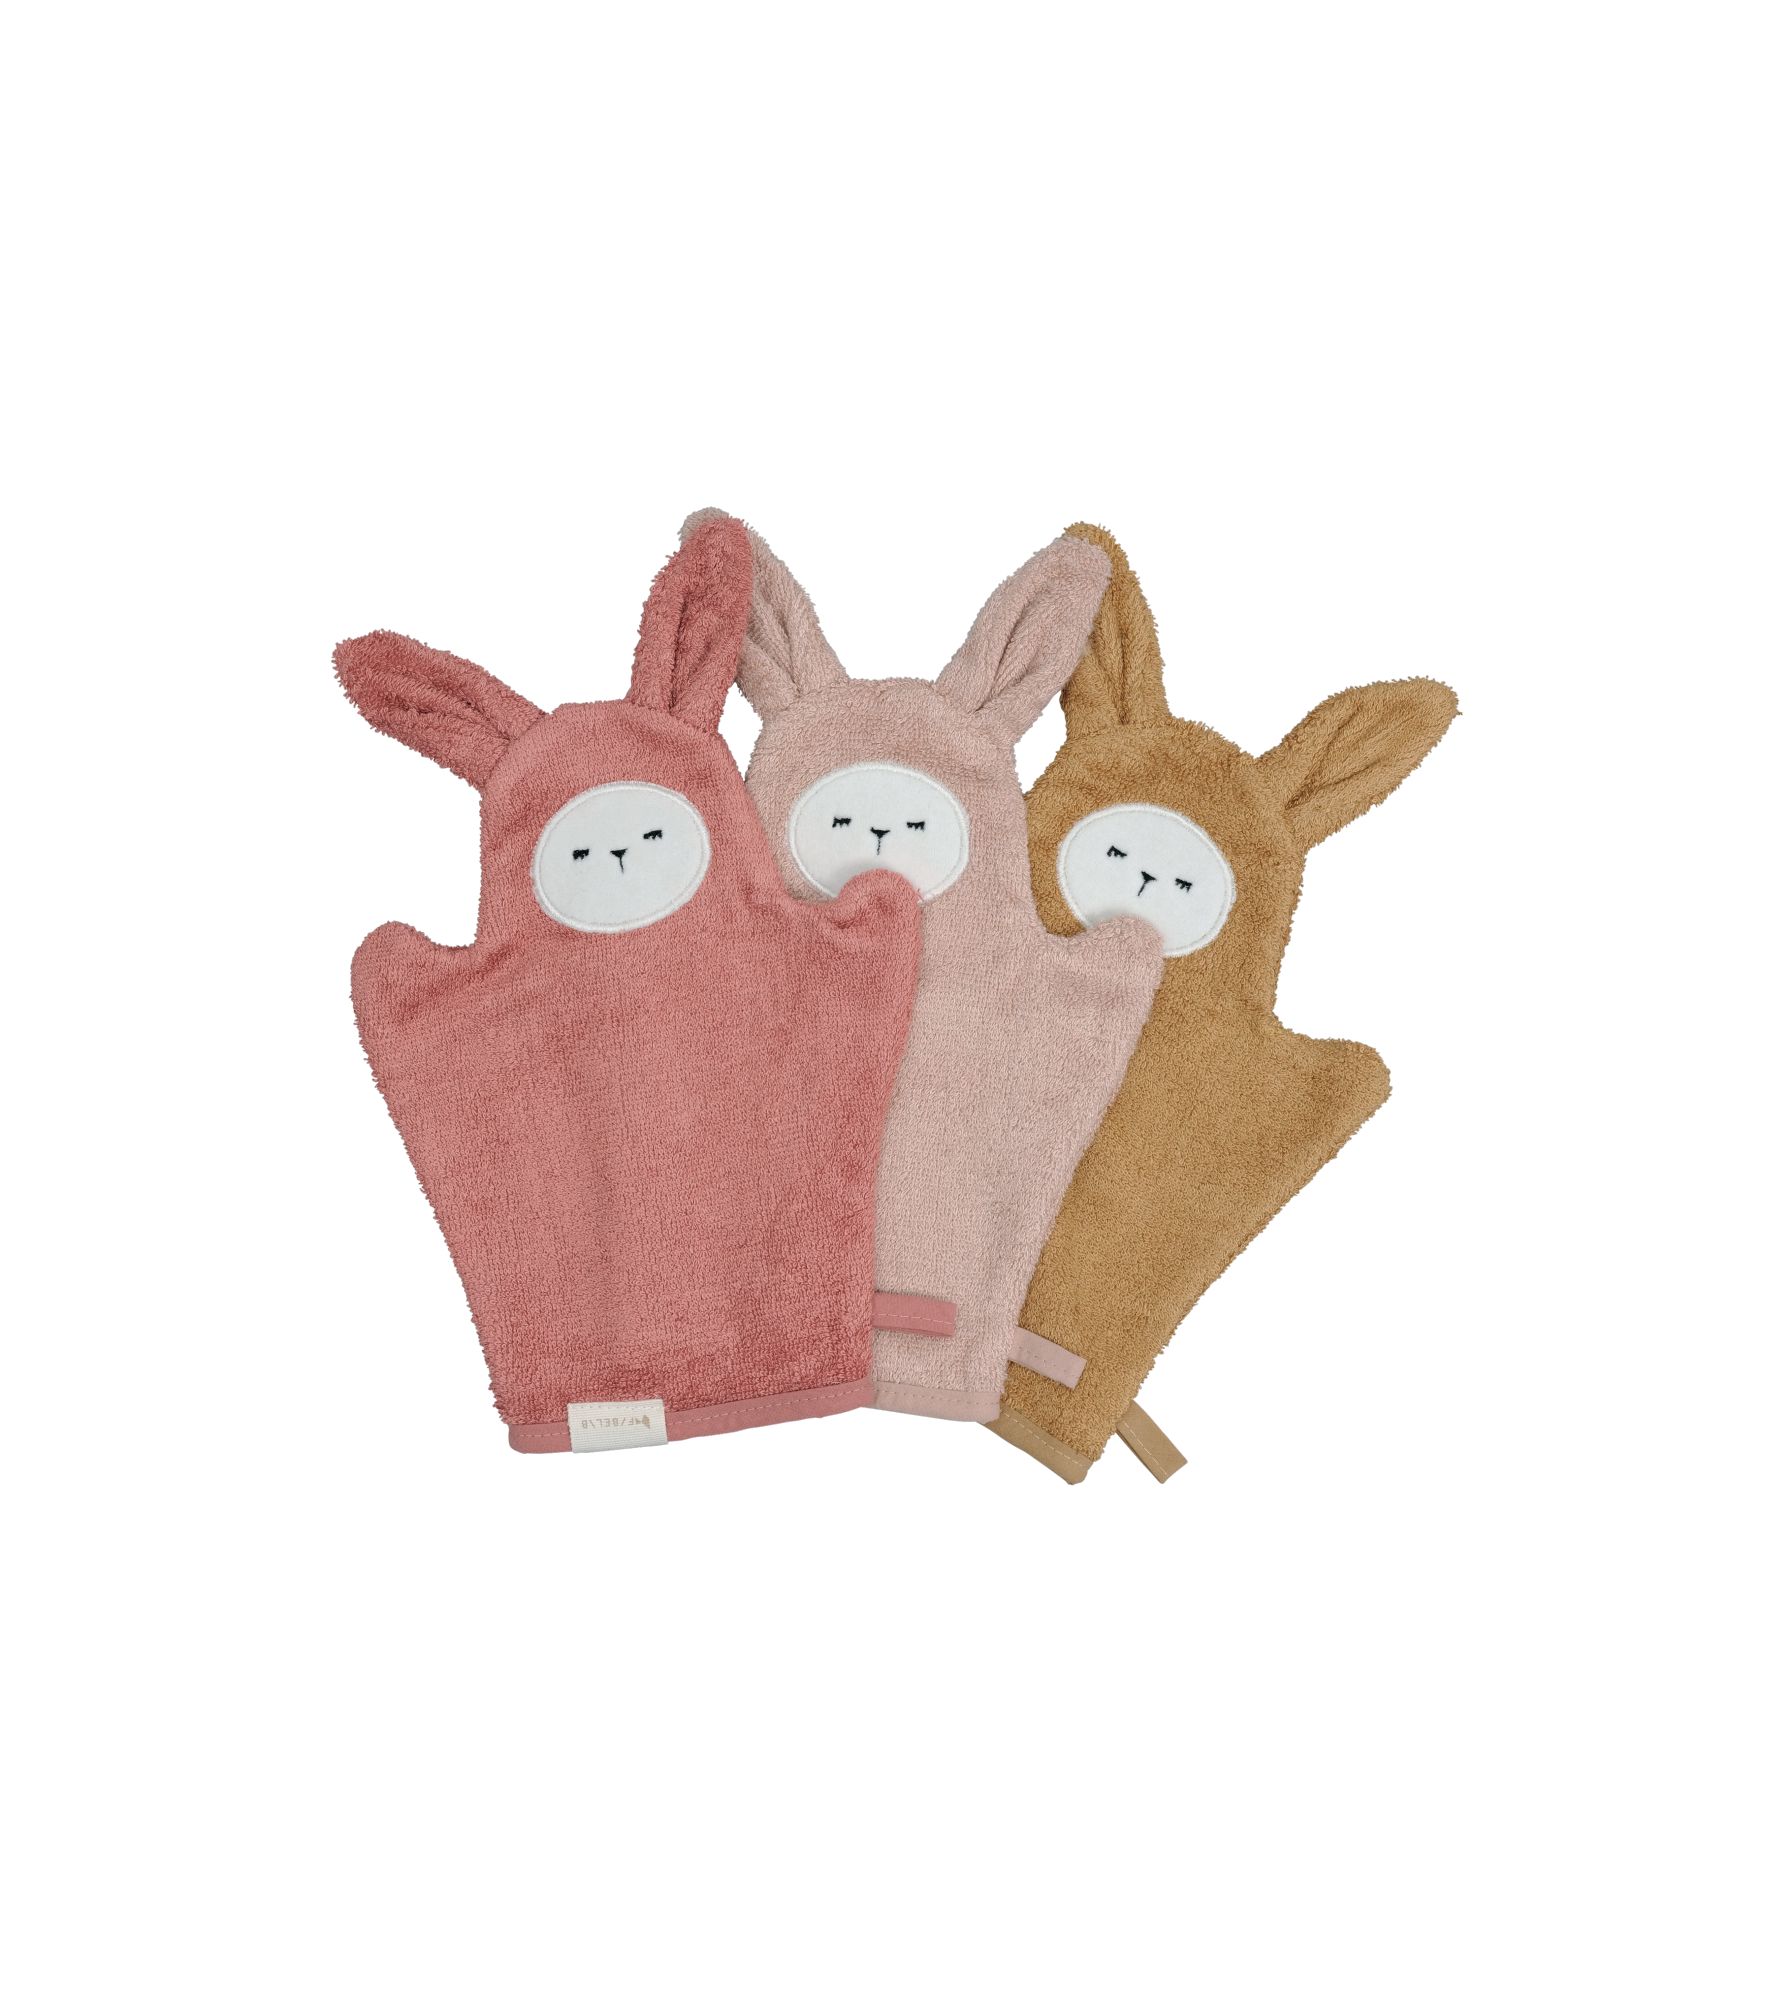 Bath Mitts - Bunny - Old Rose Mix - 3 pack (primary)_edit.png